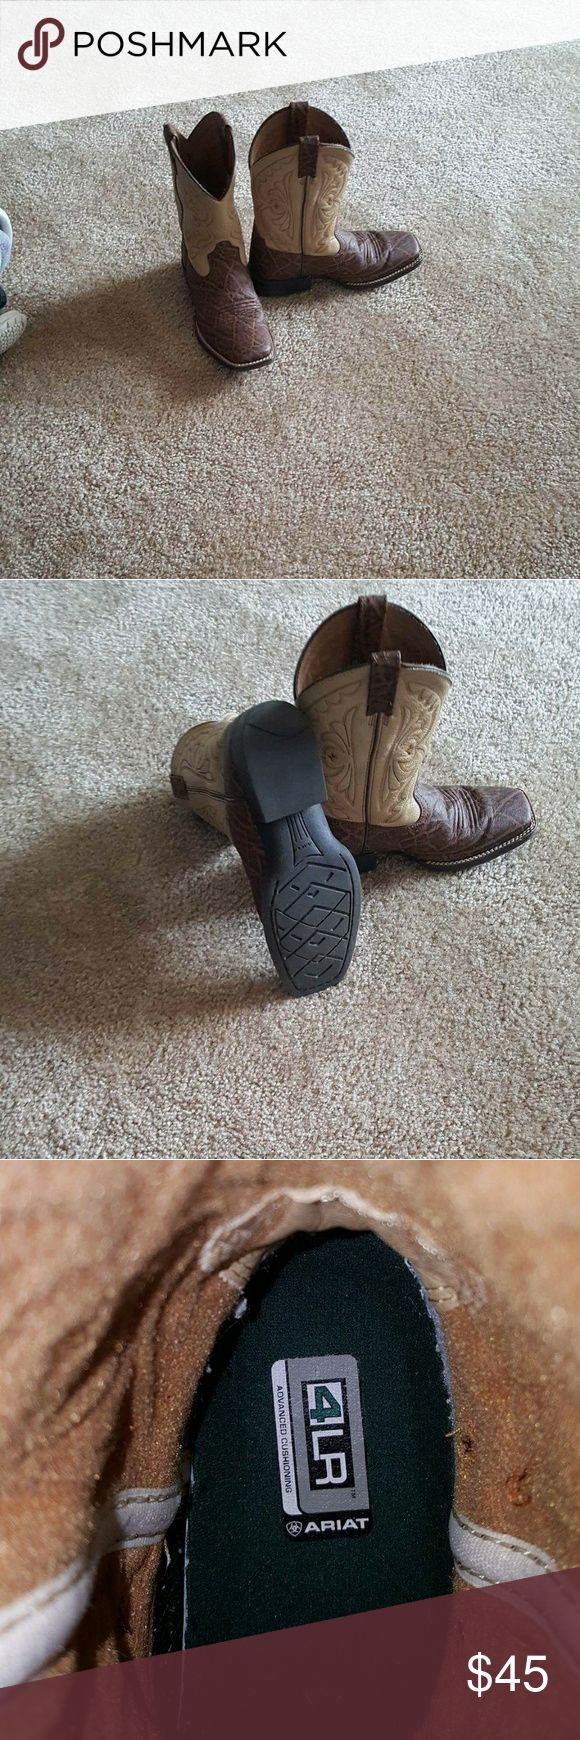 Ariat Boy Cowboy Boots ARIAT Boy Cowboy Boots Used but in GREAT CONDITION   Size 3.5  No trades No low ball offers  I accept reasonable offers Ariat Shoes Boots